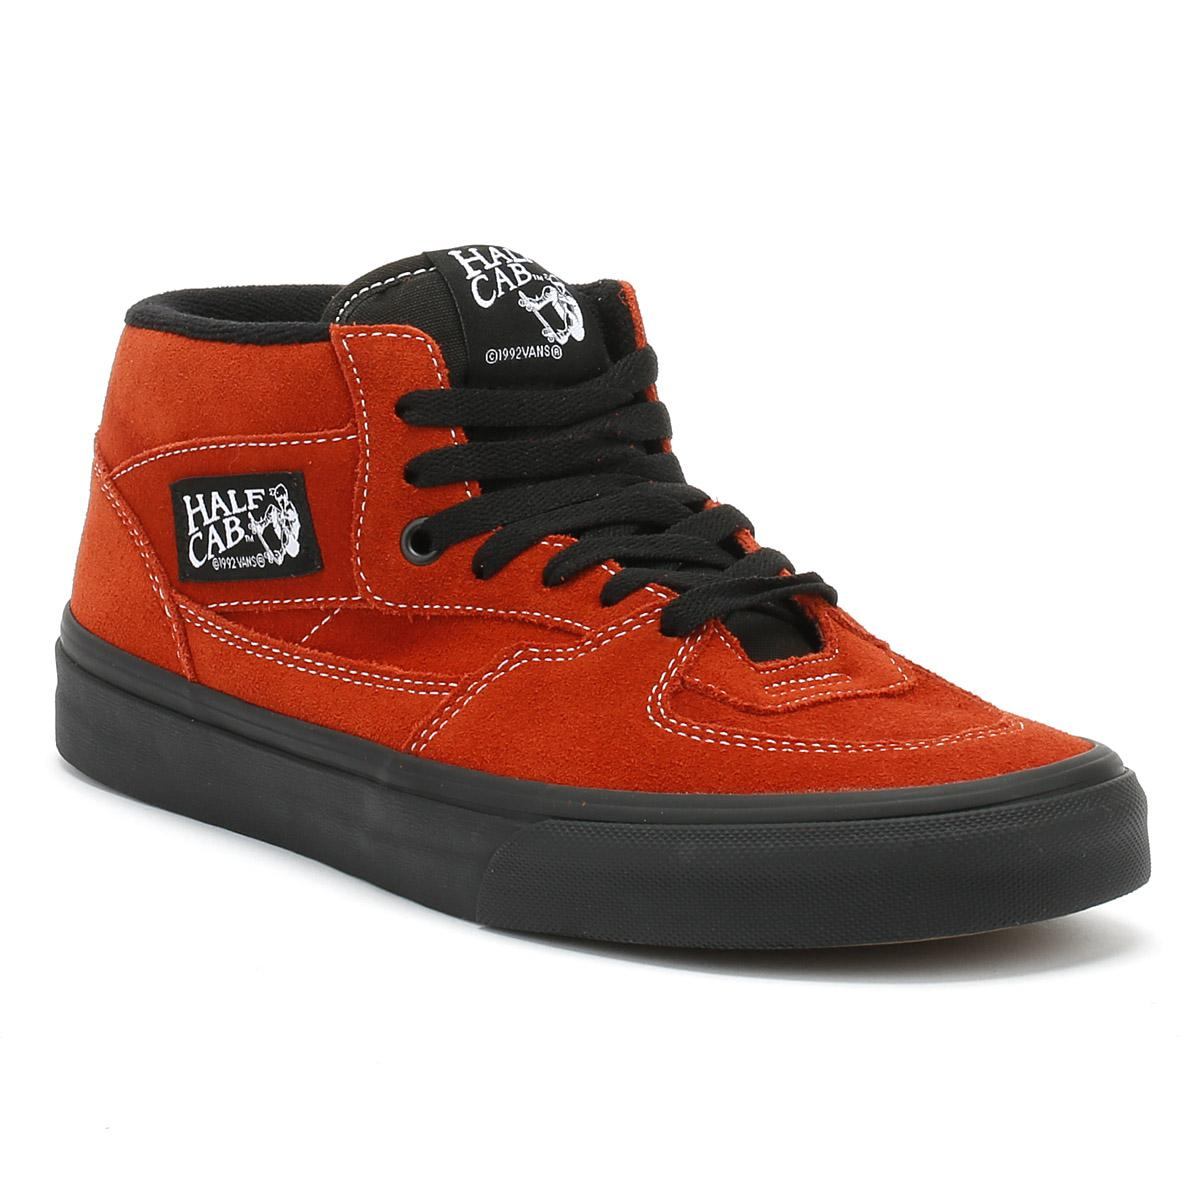 c2ed7f98bf Lyst - Vans Mens Bossa Nova Red   Black Half Cab Trainers in Red for Men